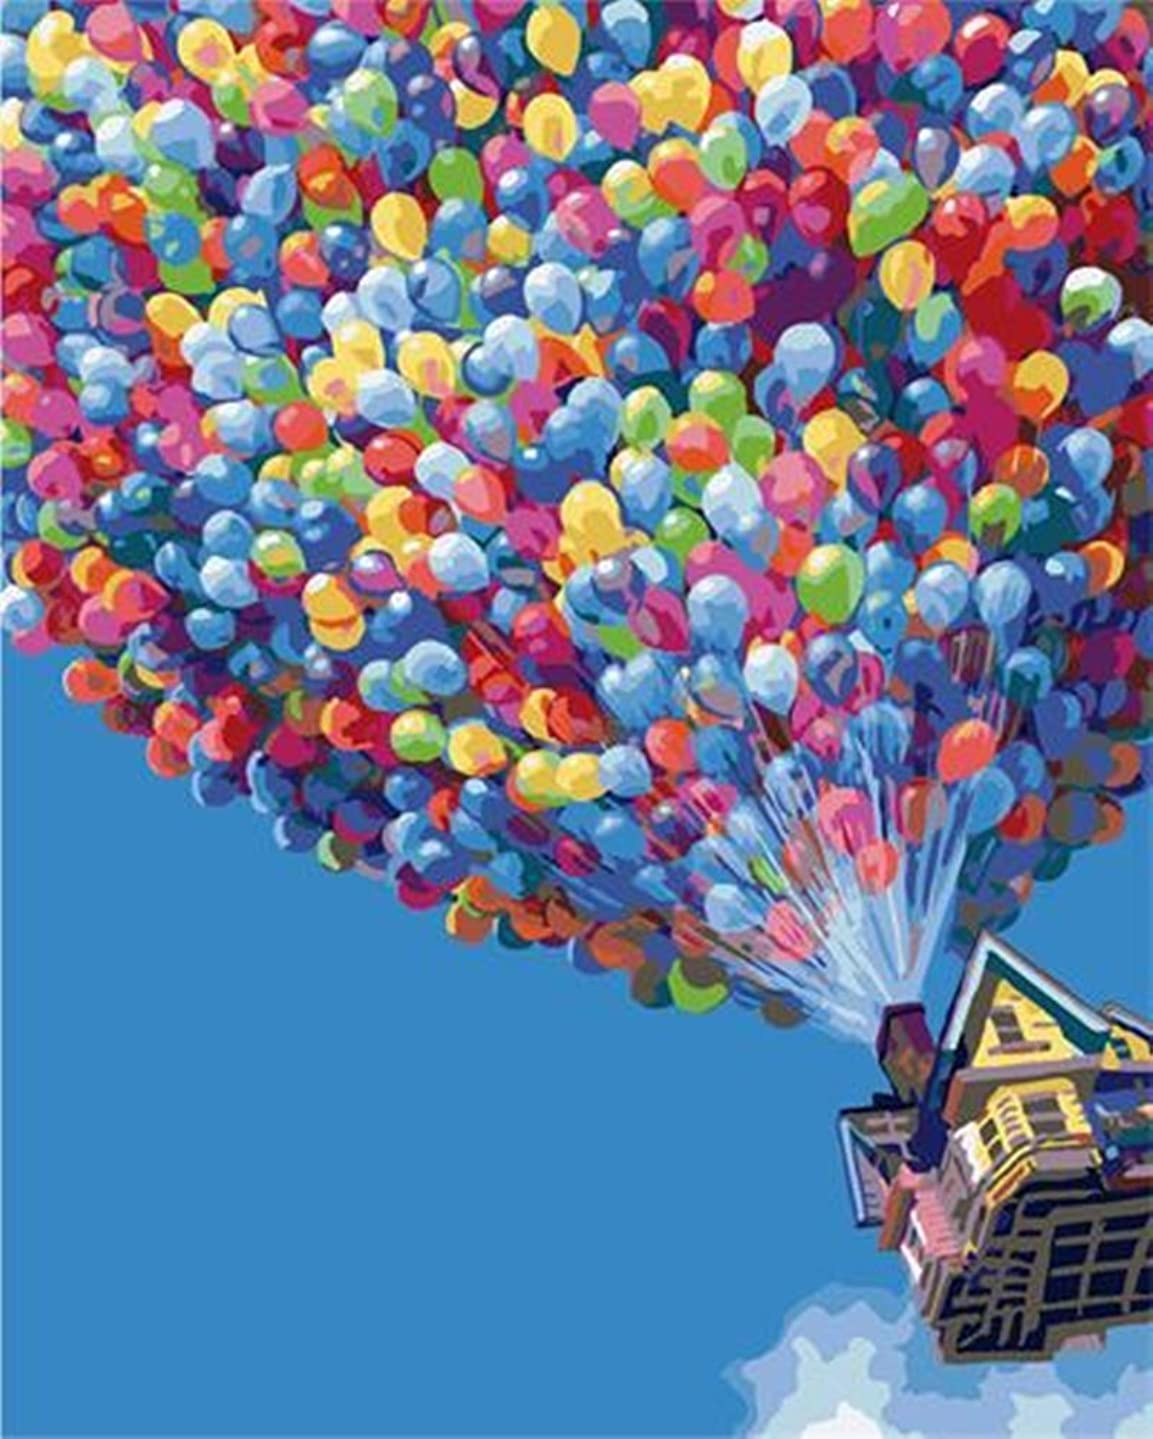 YEESAM ART Paint by Numbers for Adults Up, Hot Air Balloon, Ballons Balls 16x20 inch Linen Canvas, DIY Number Painting